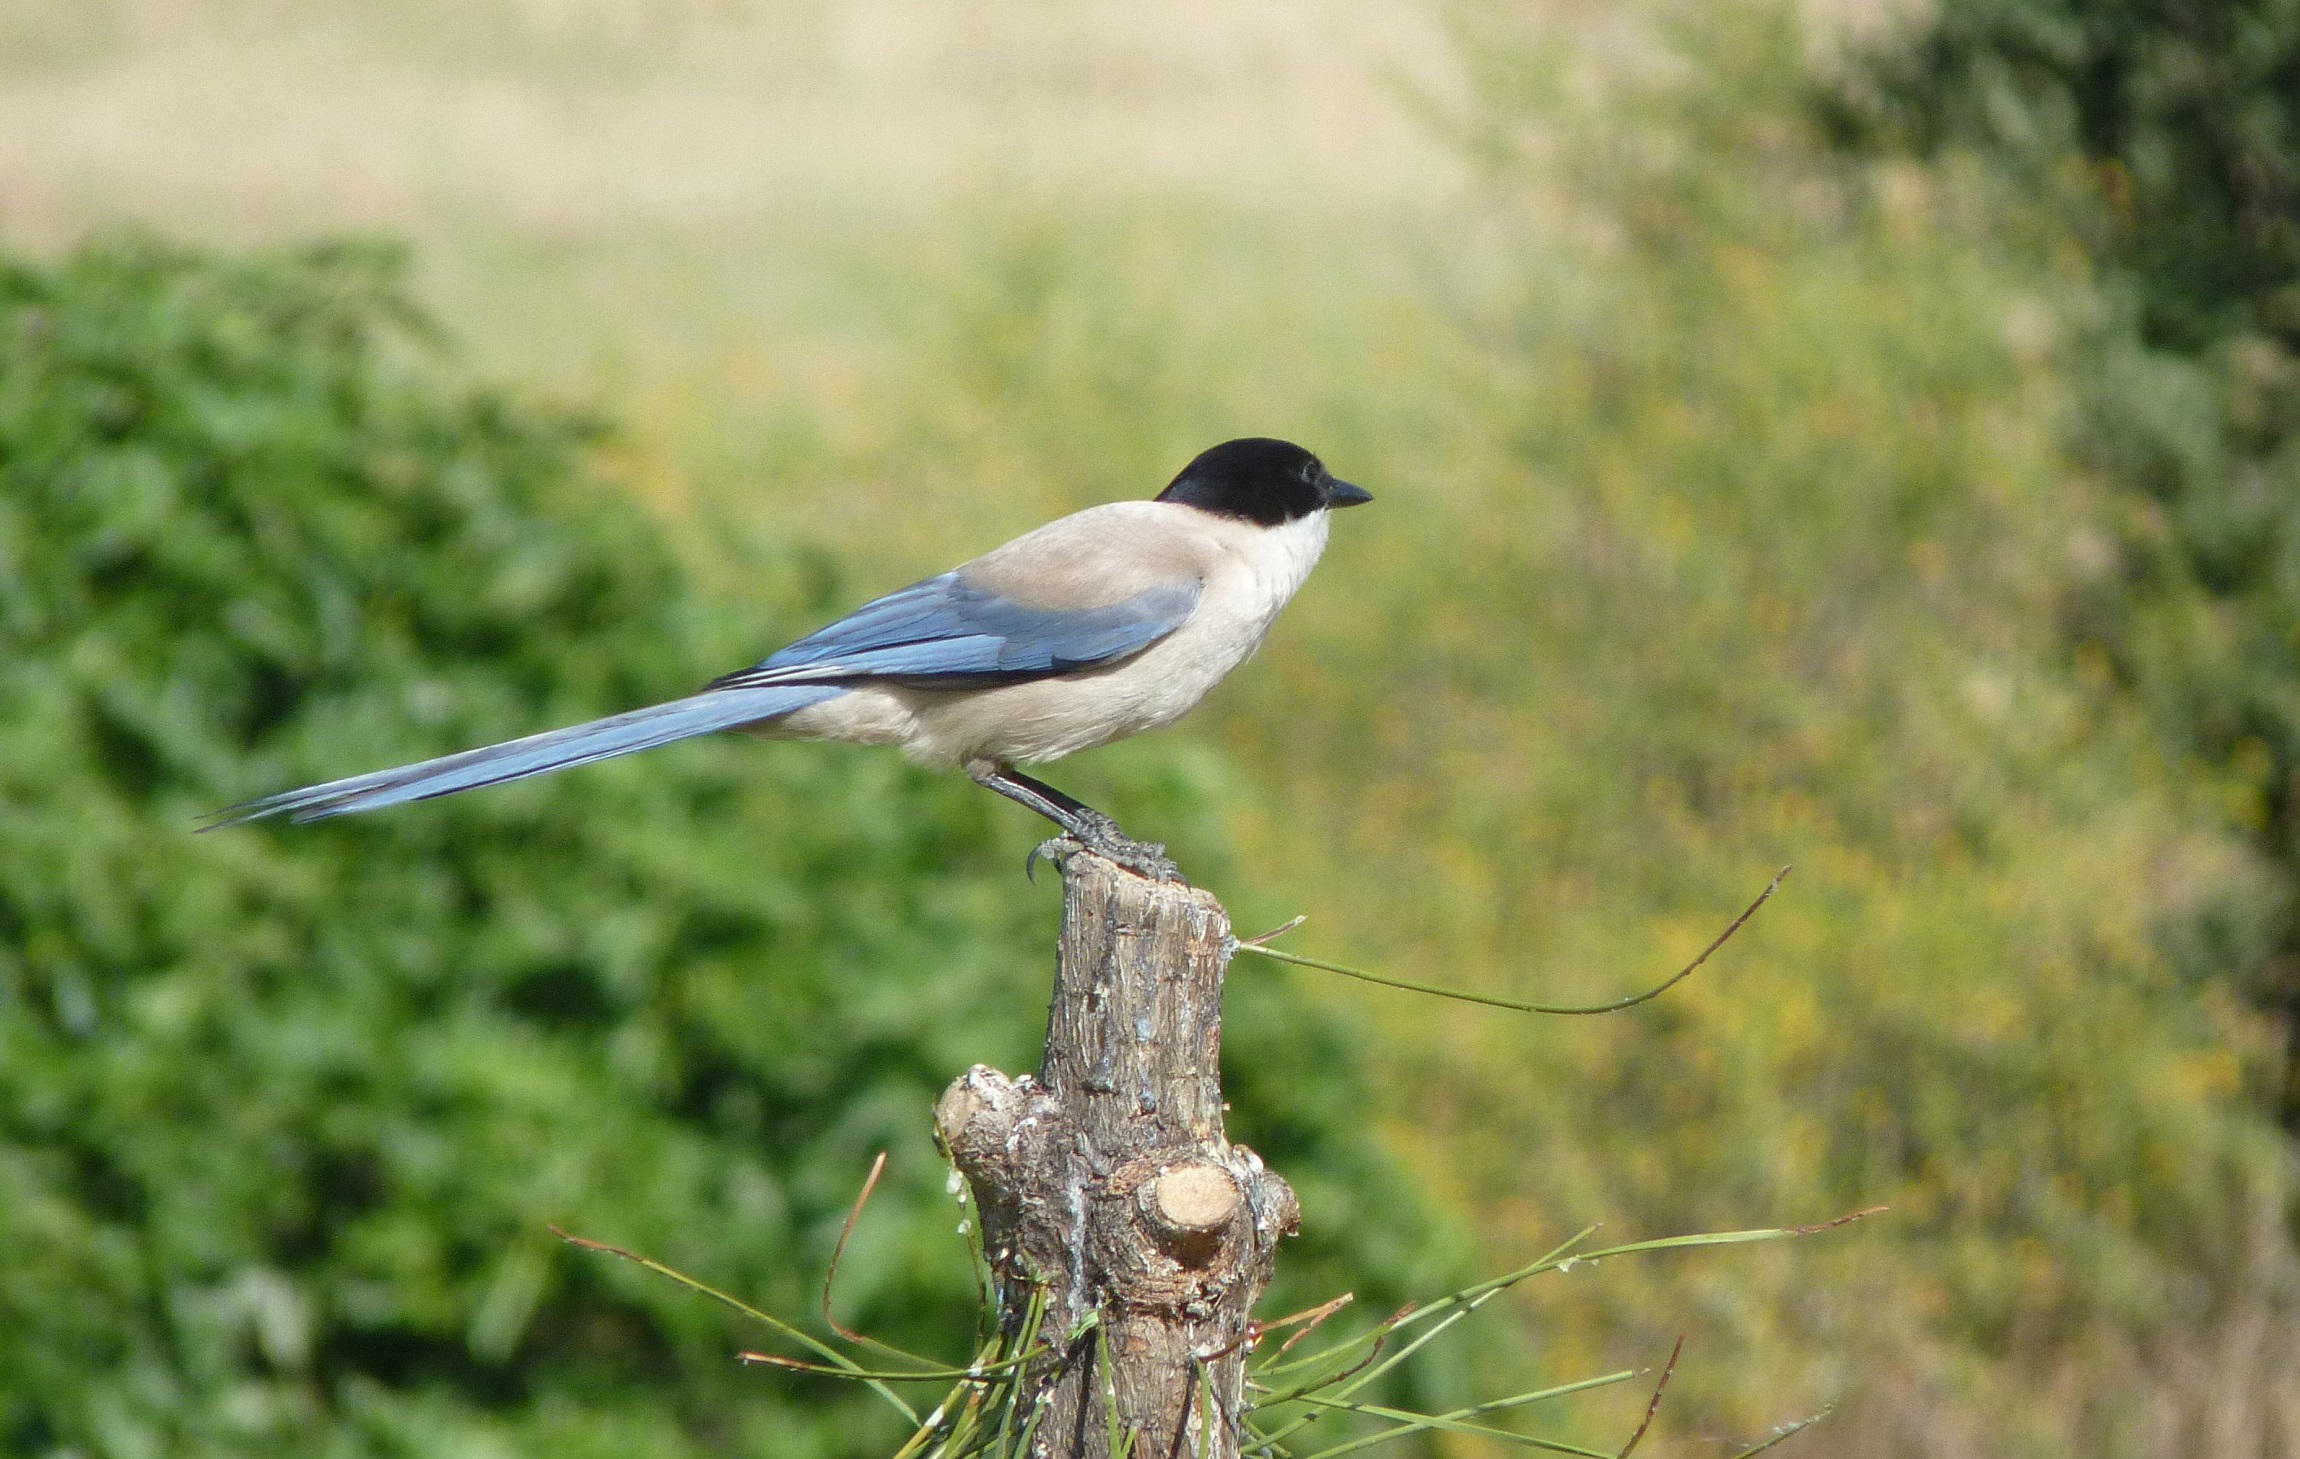 Azure-winged Magpie on the stump